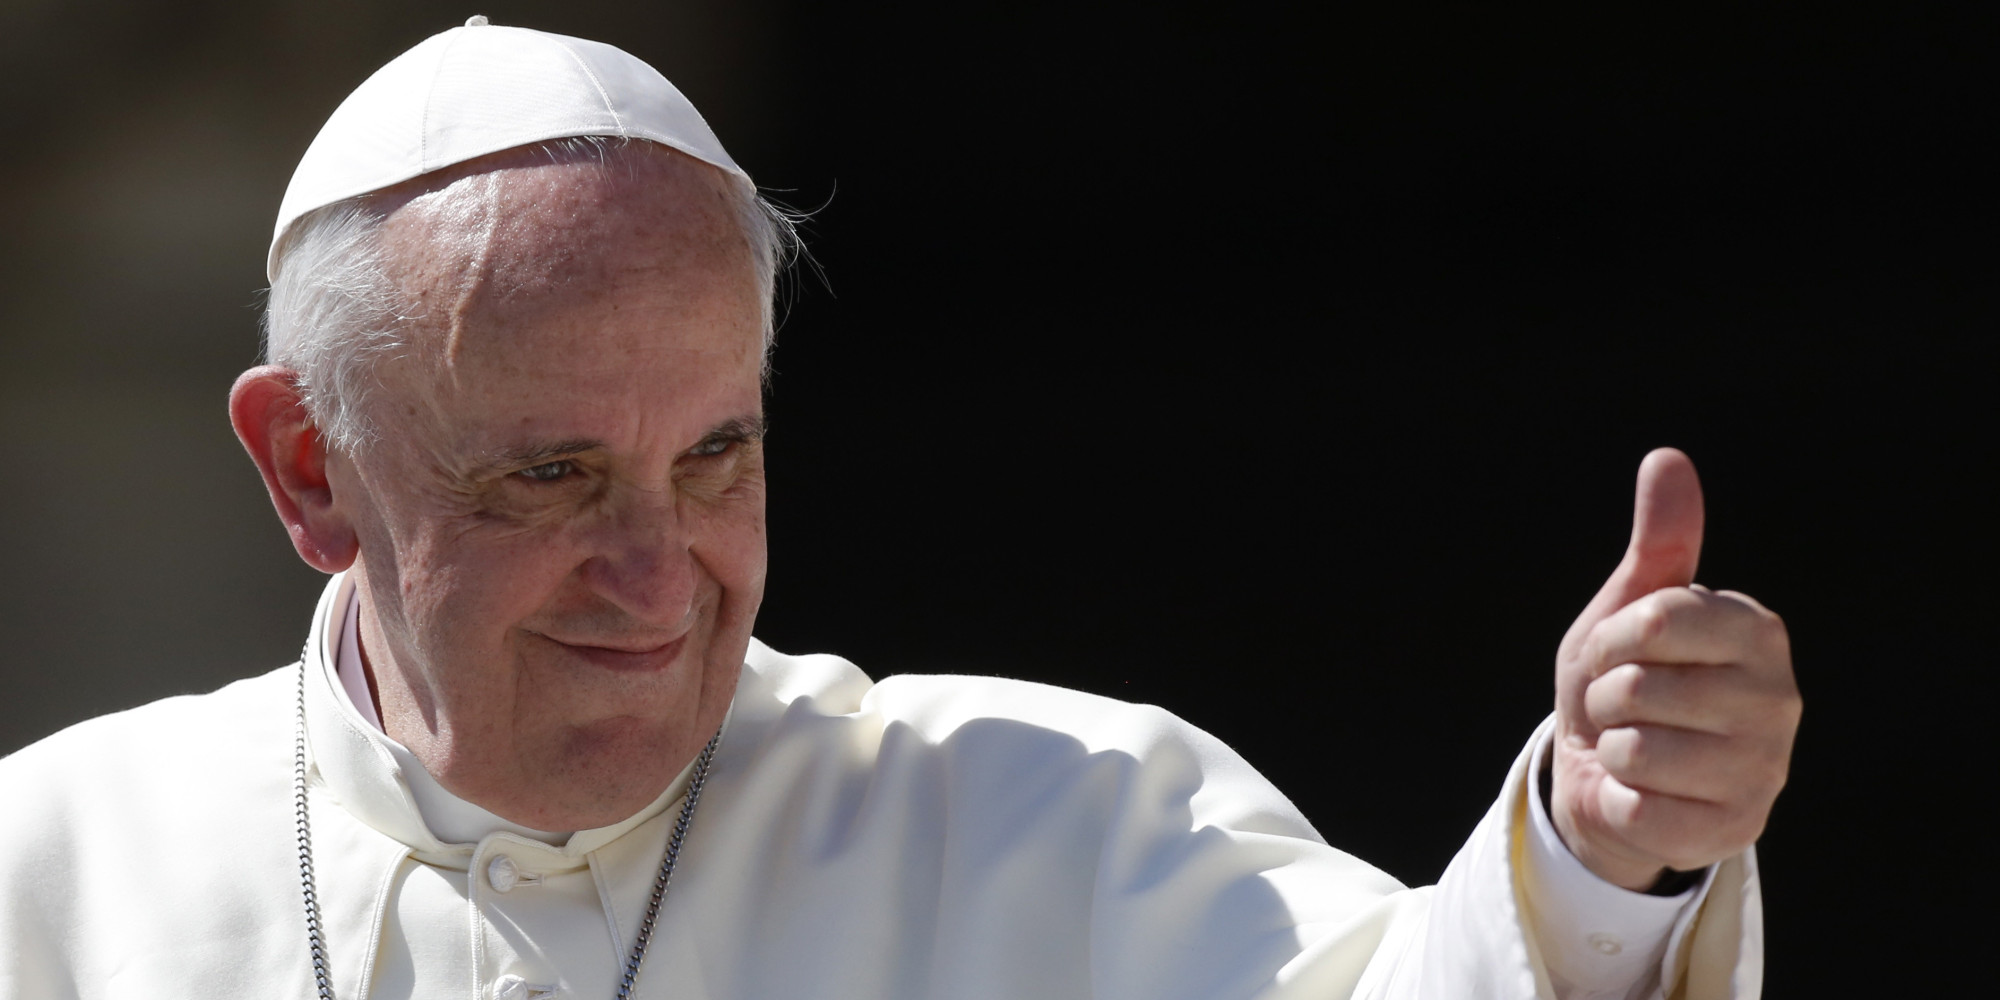 Why Would All These People Lie About Pope Francis?